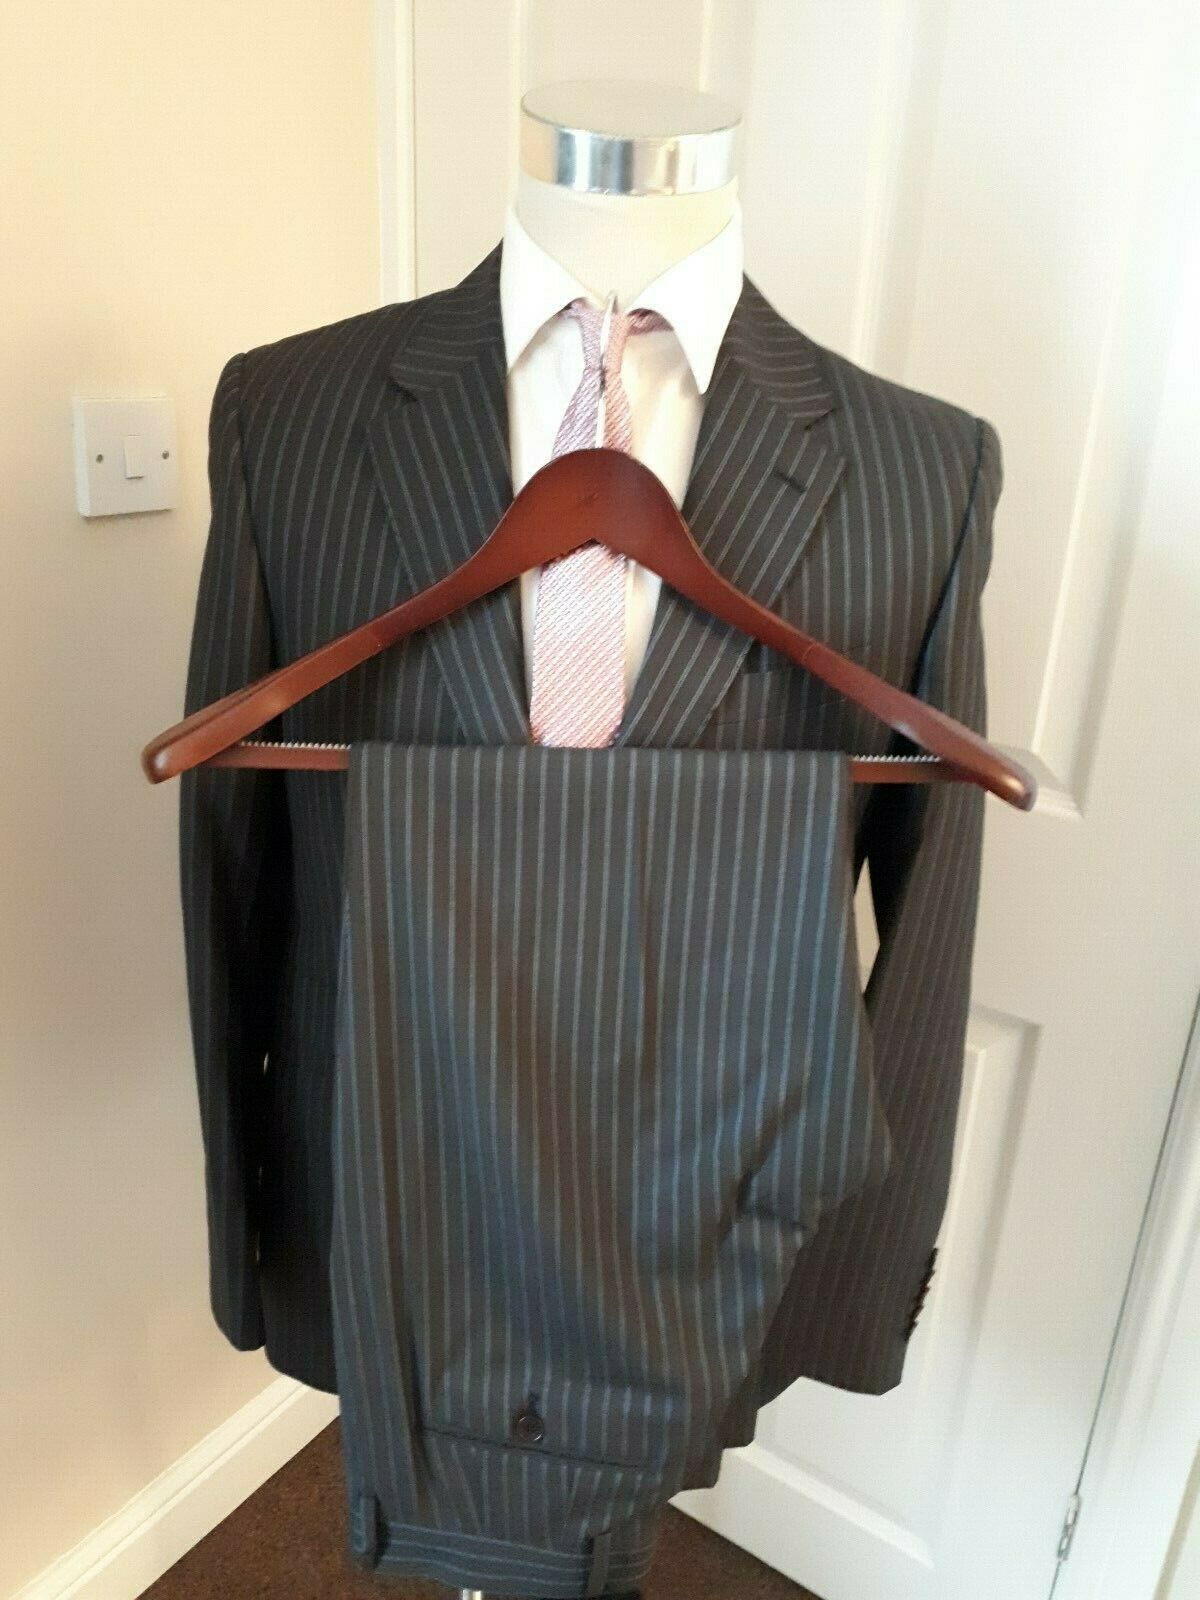 PAUL SMITH SUIT 38 R WITH PAUL SMITH SUIT COVER MADE IN ITALY IN GREAT CONDITION